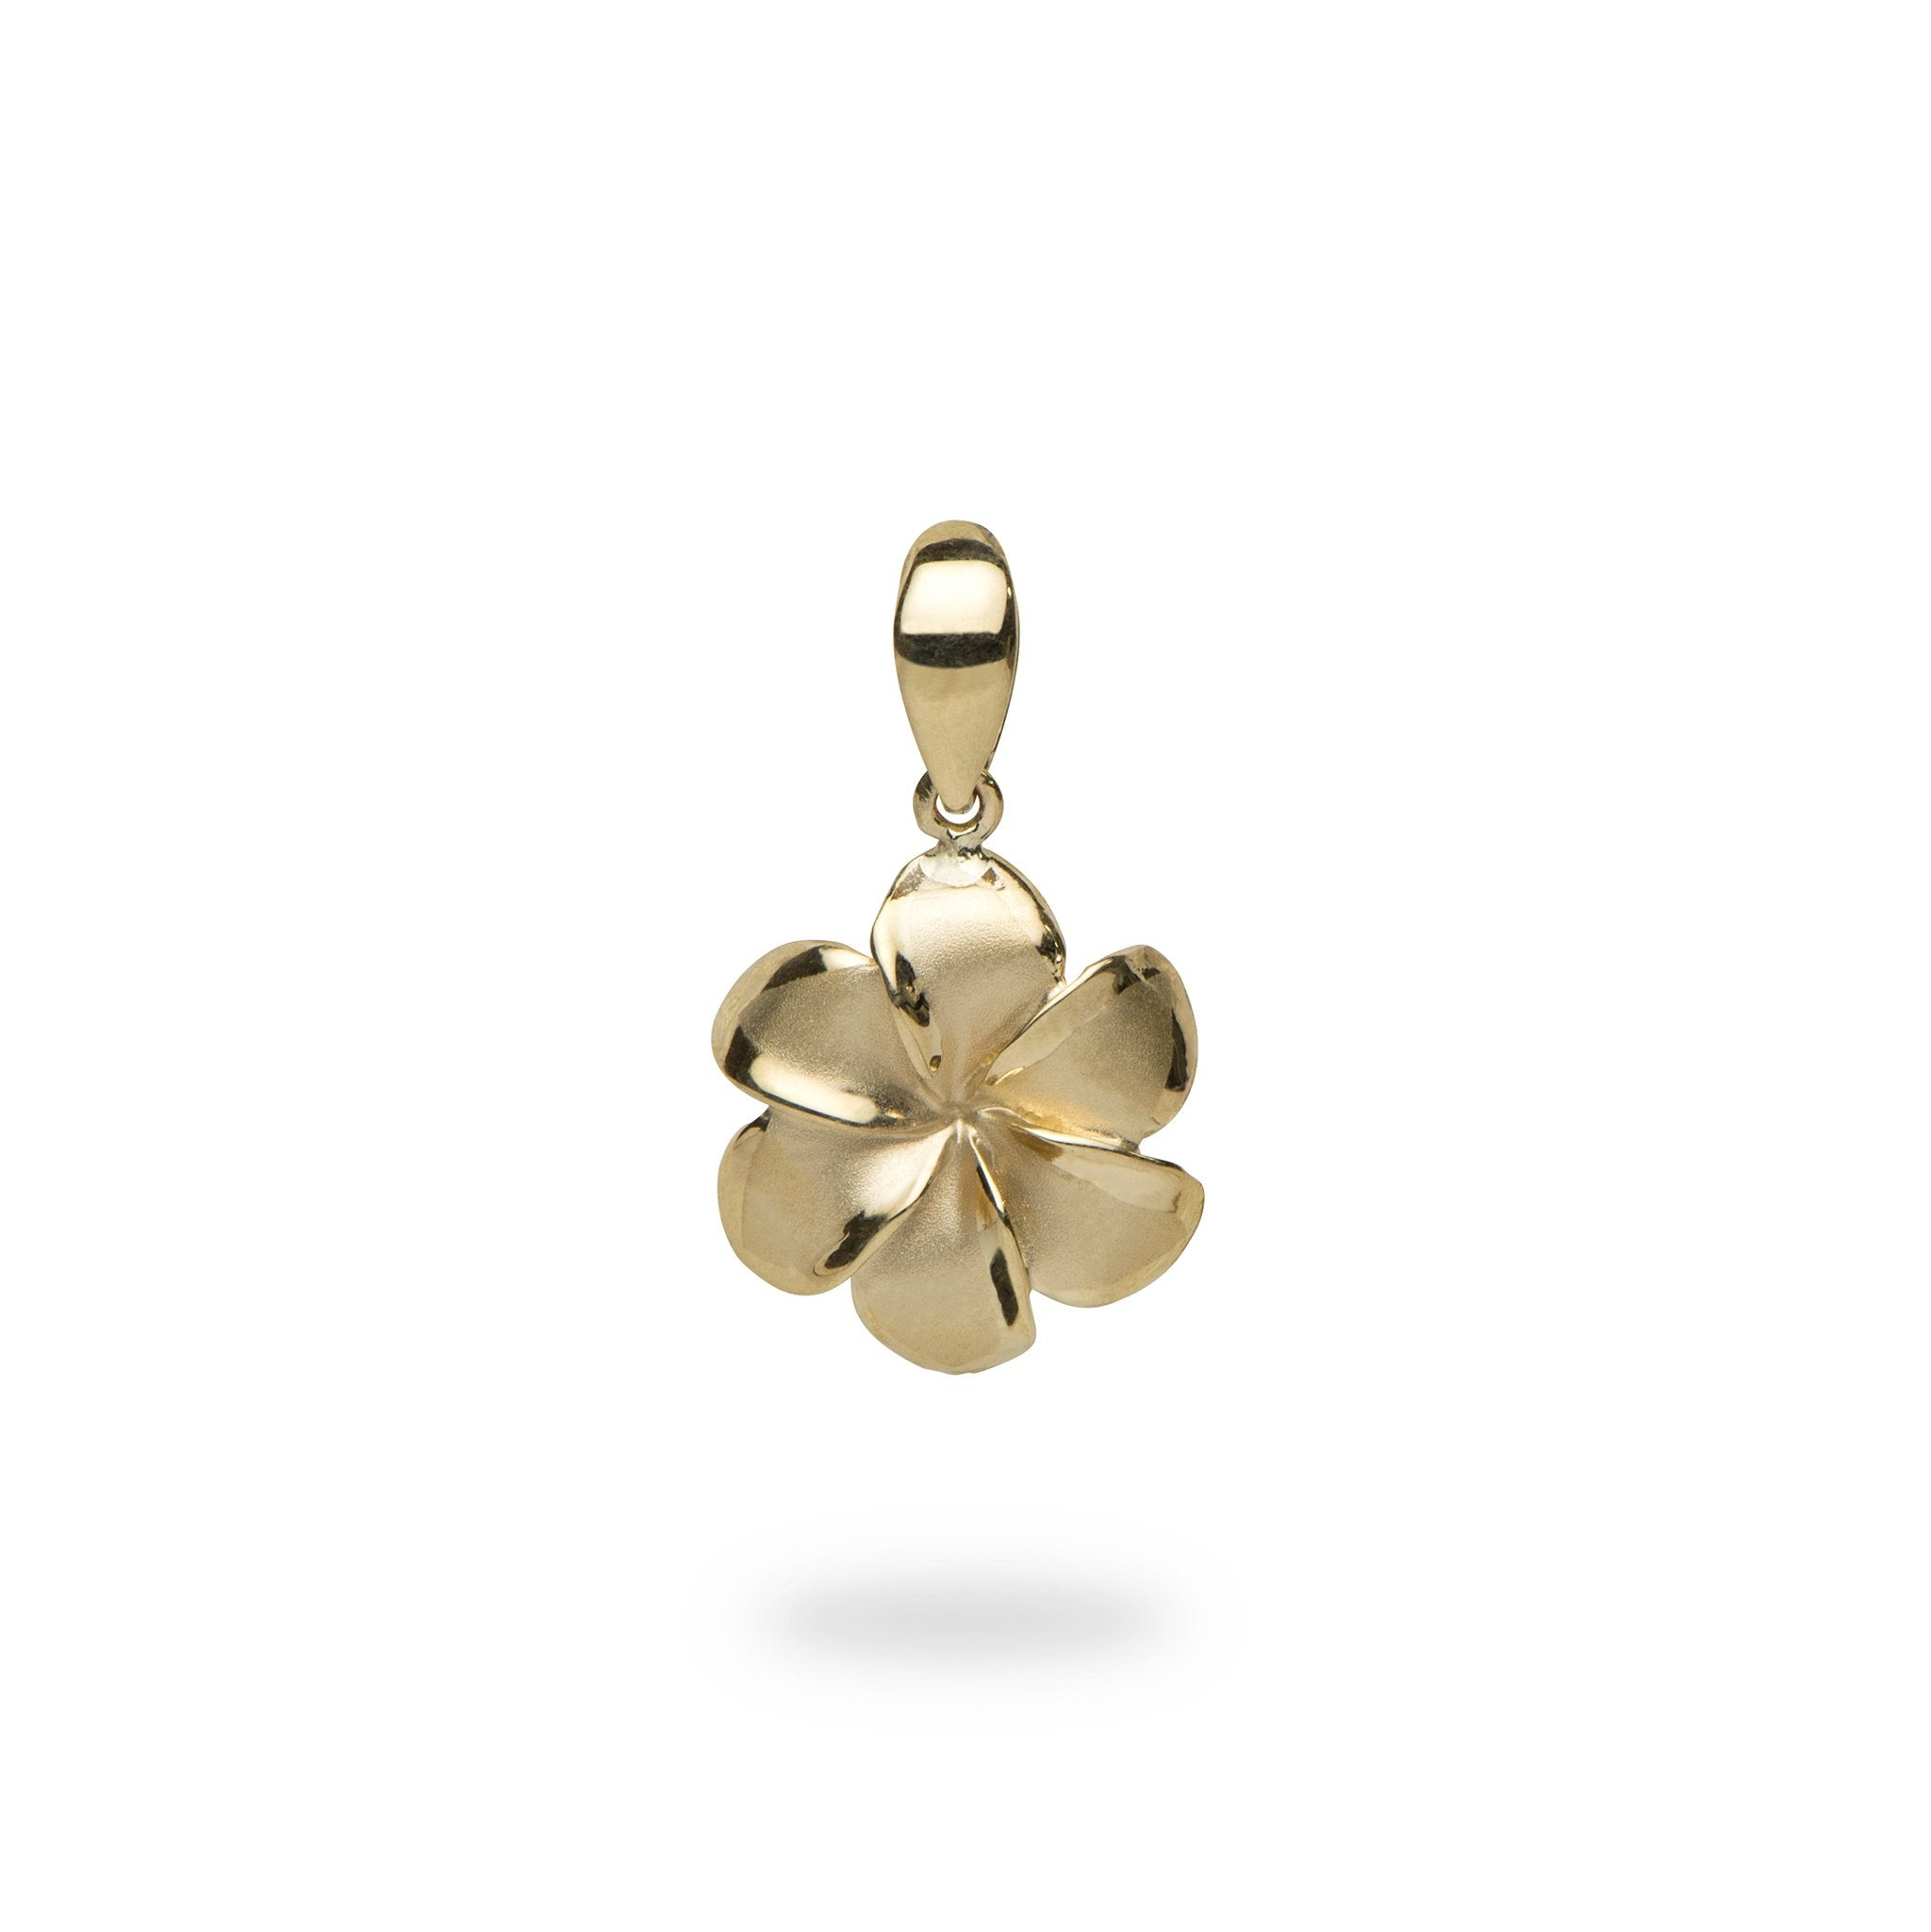 Aloha heart pendant in 14k yellow gold 9mm 30mm 6 petal plumeria pendant in 14k yellow gold 13mm mozeypictures Choice Image